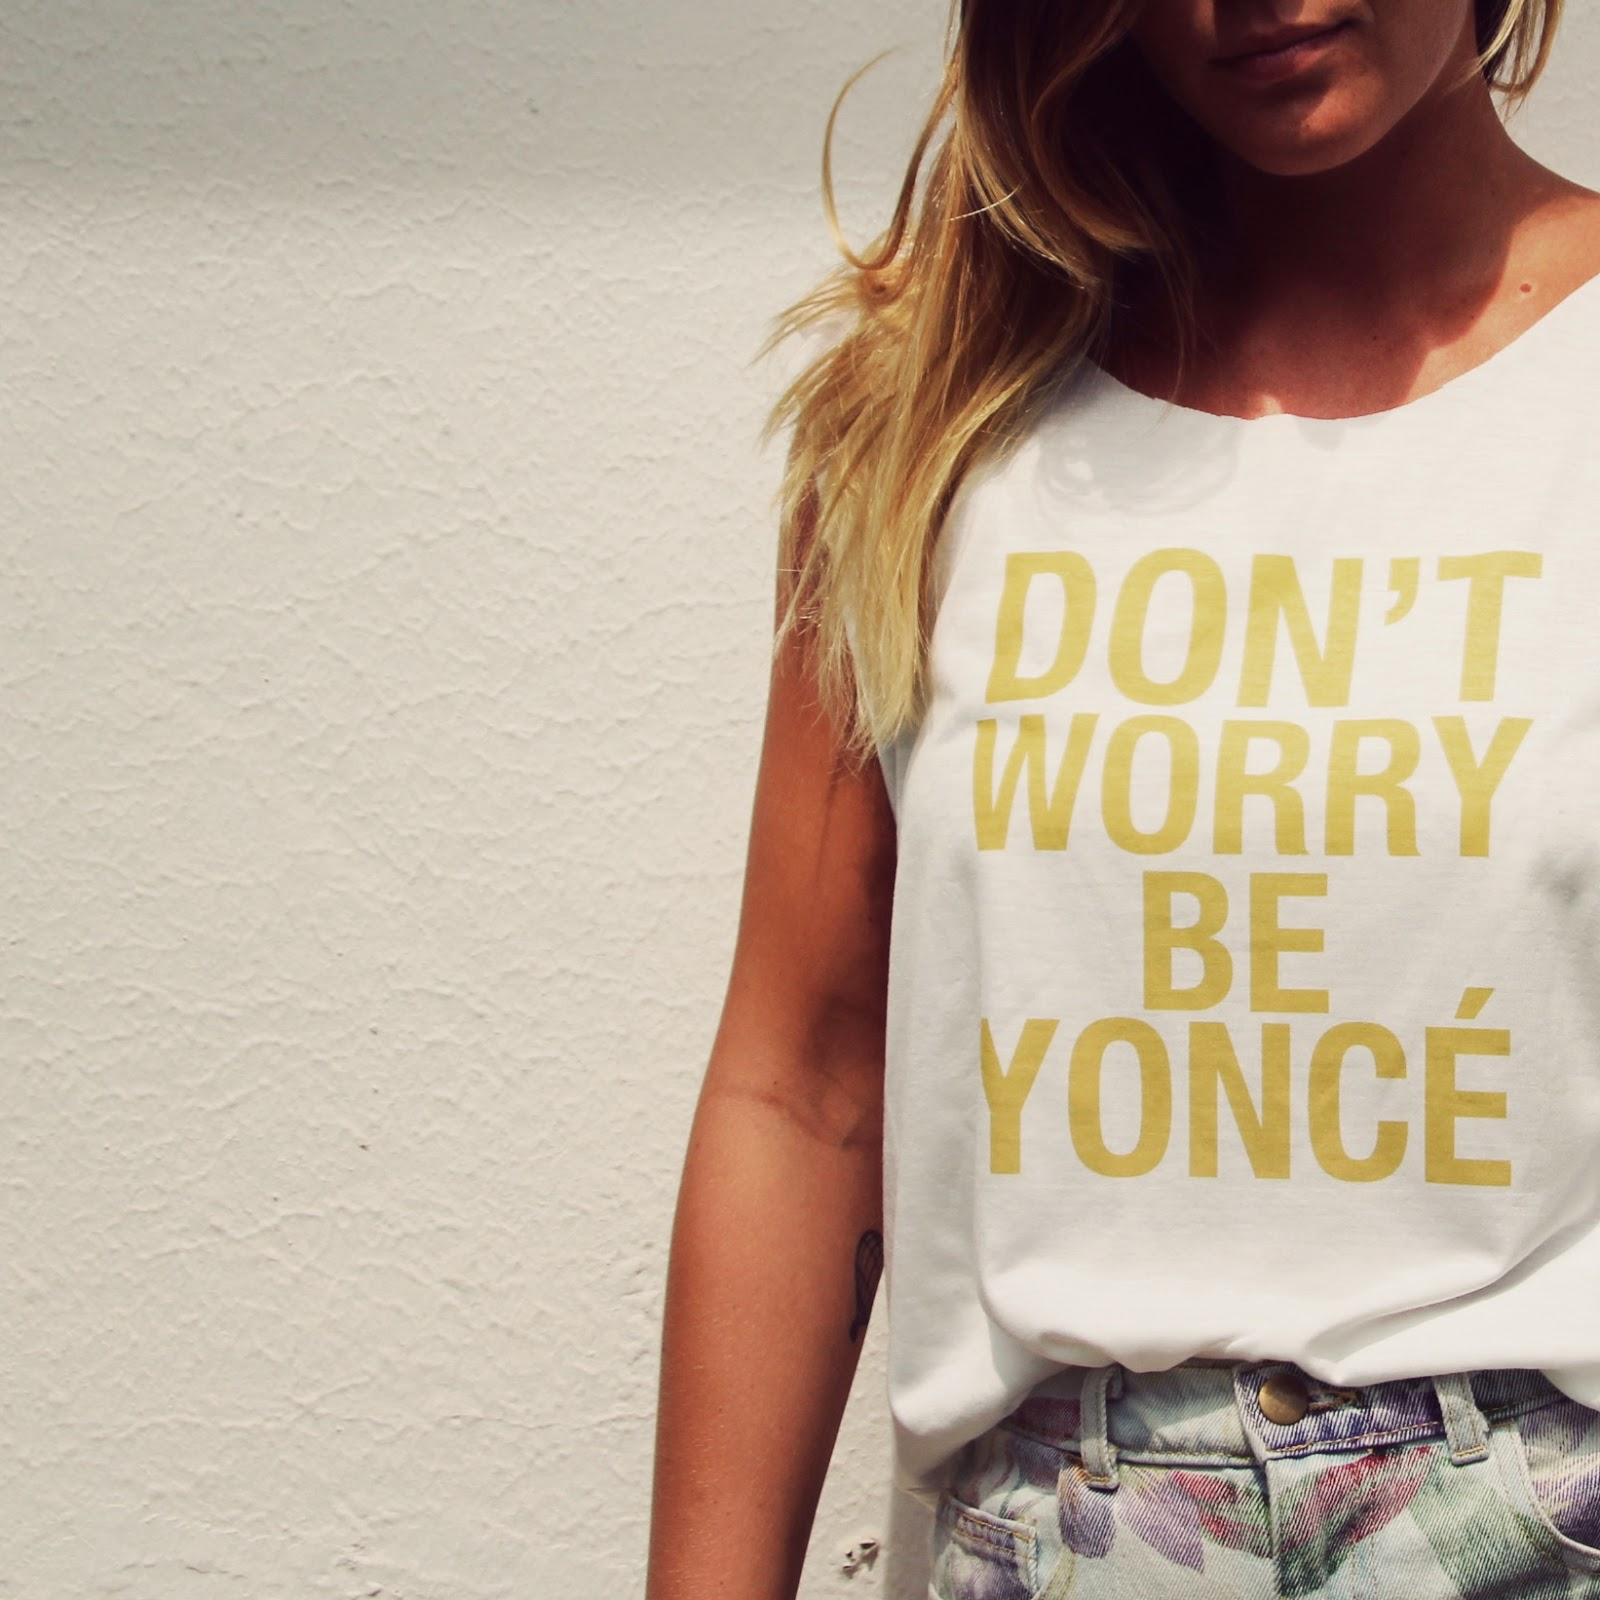 https://www.etsy.com/listing/199341448/dont-worry-be-yonce?ref=listing-shop-header-0